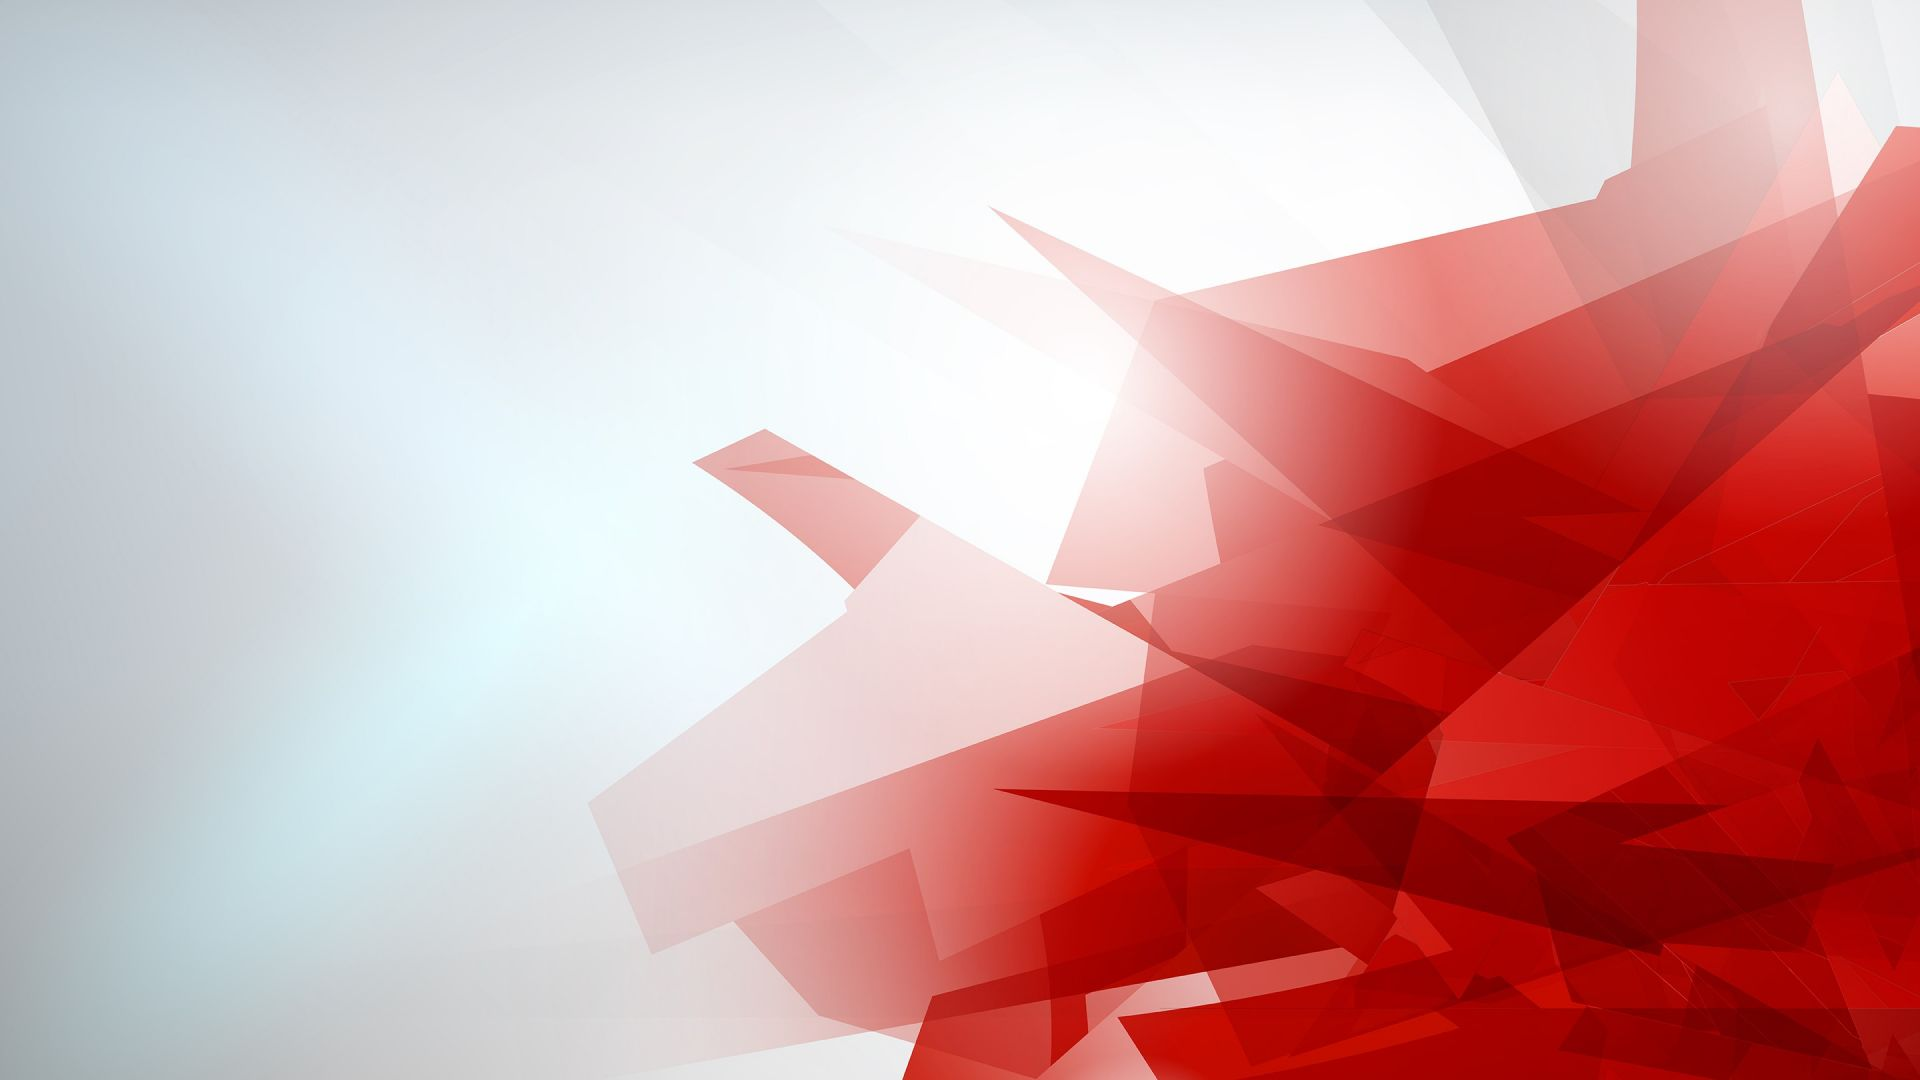 Low Poly Iphone X Wallpaper Desktop Wallpaper Red Abstract Low Poly Art Hd Image